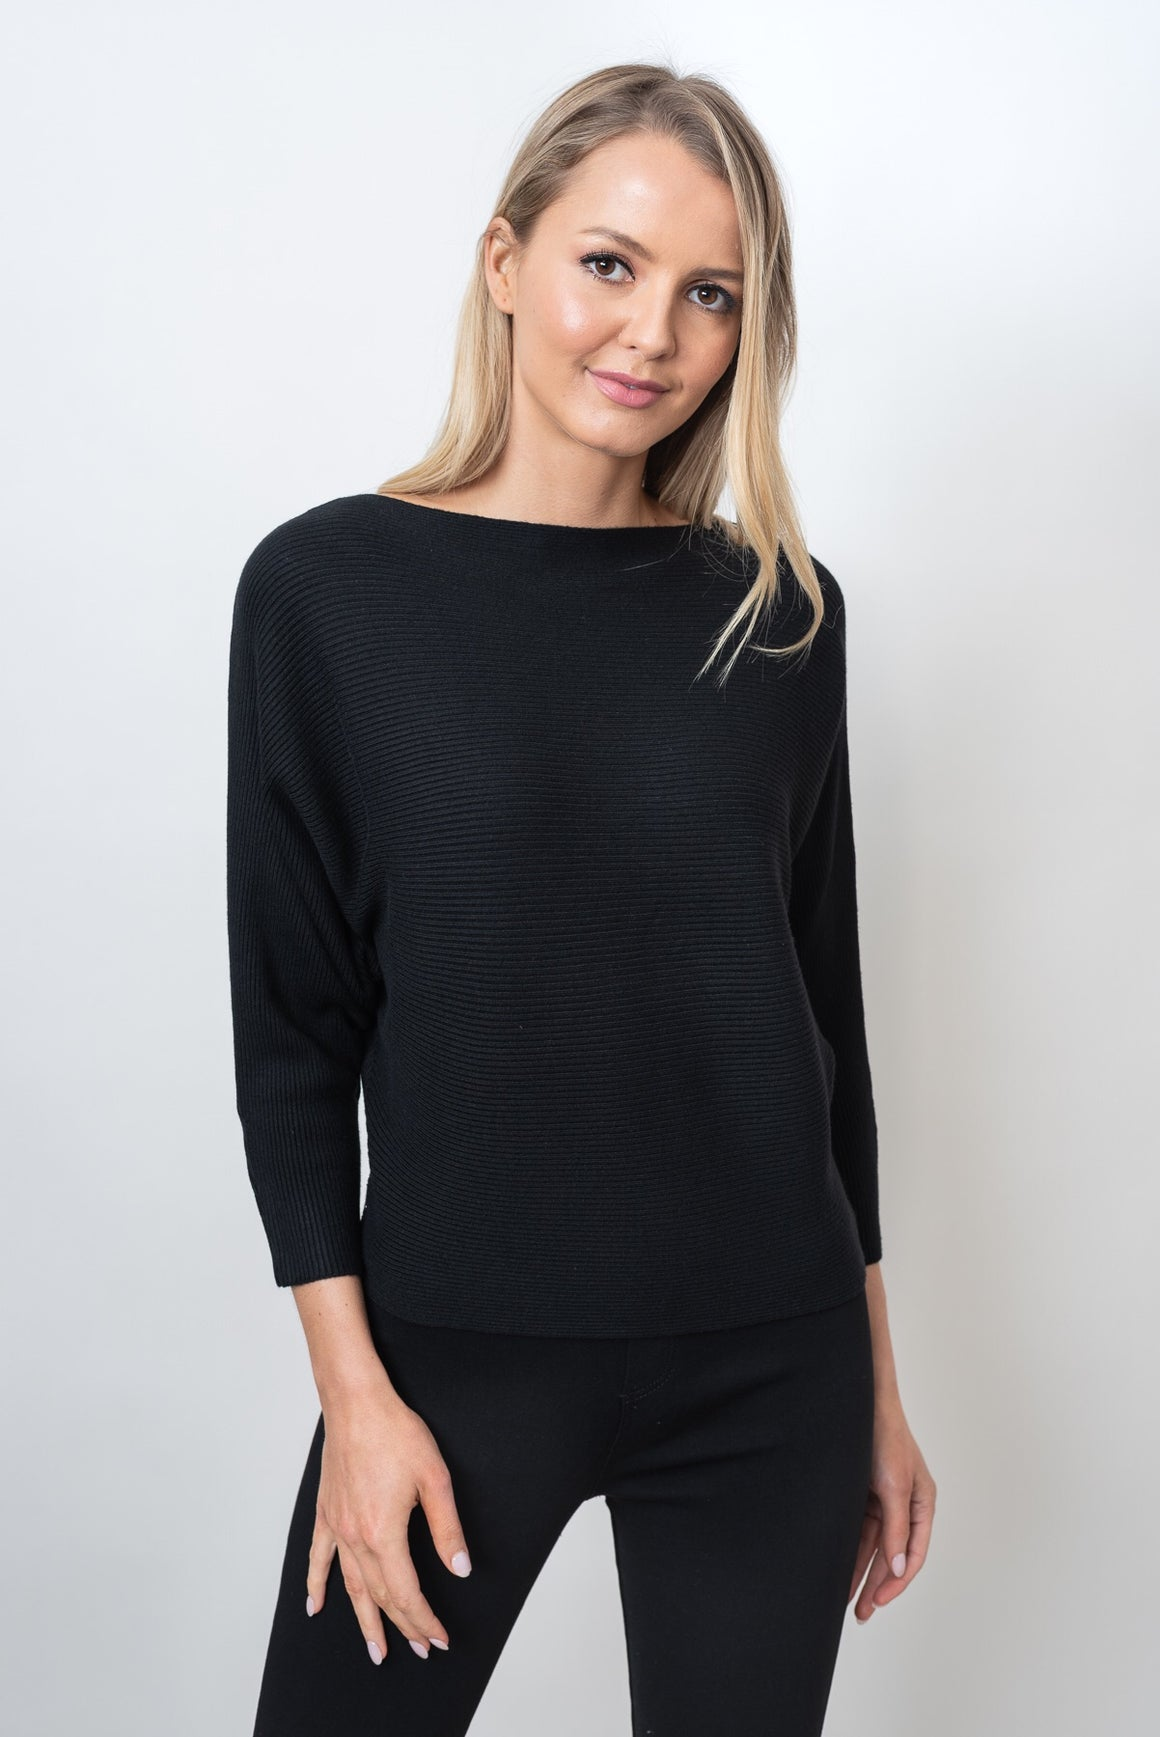 MONA KNIT  - BLACK